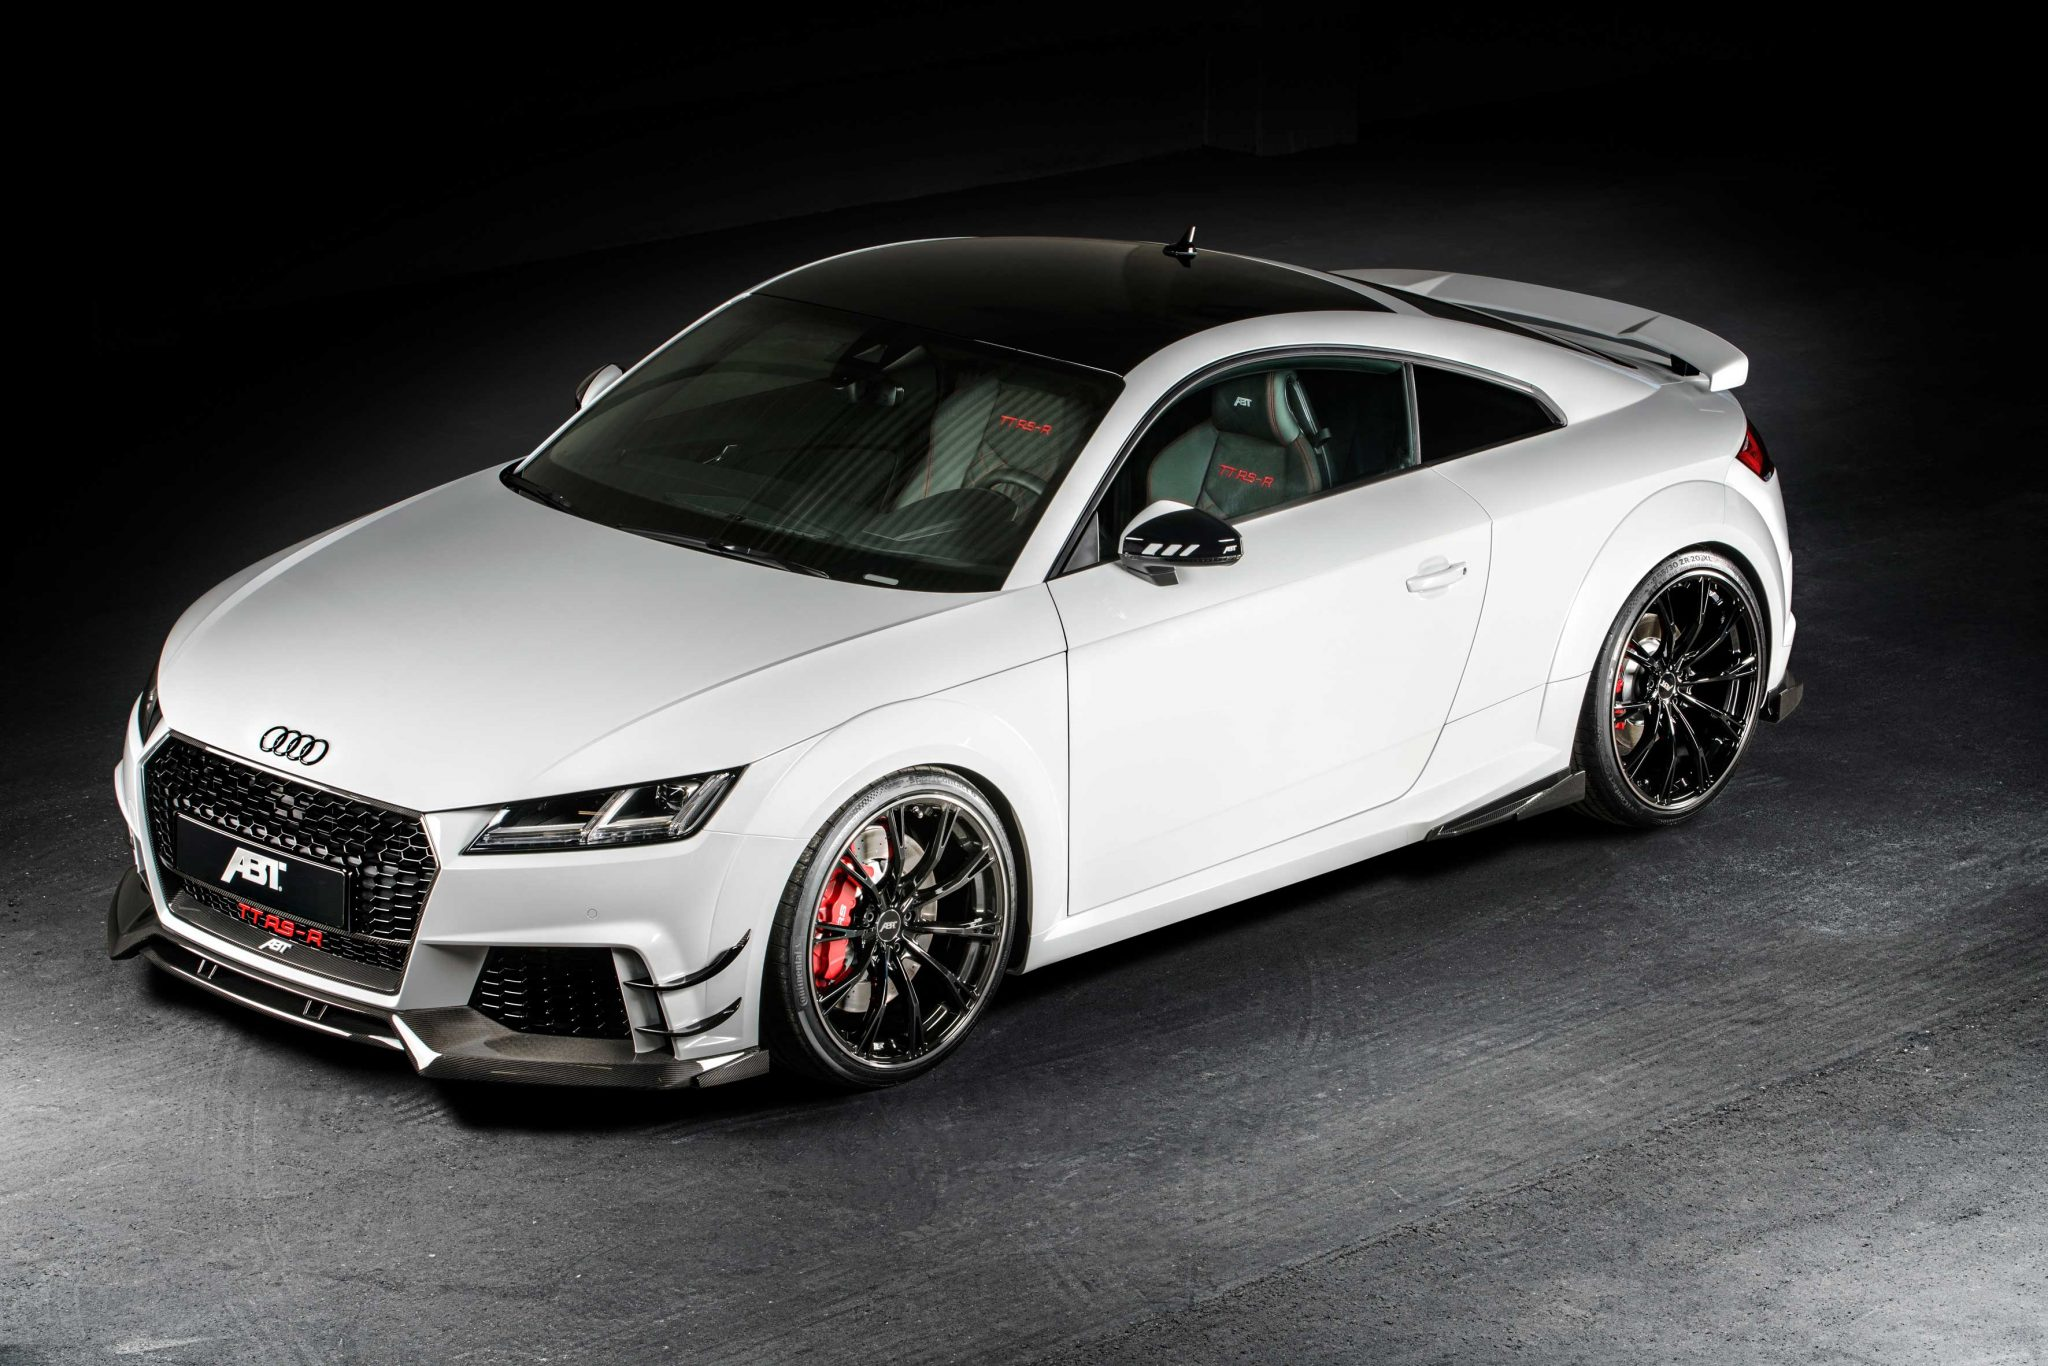 Audi ABT TTRS-R _Top_View